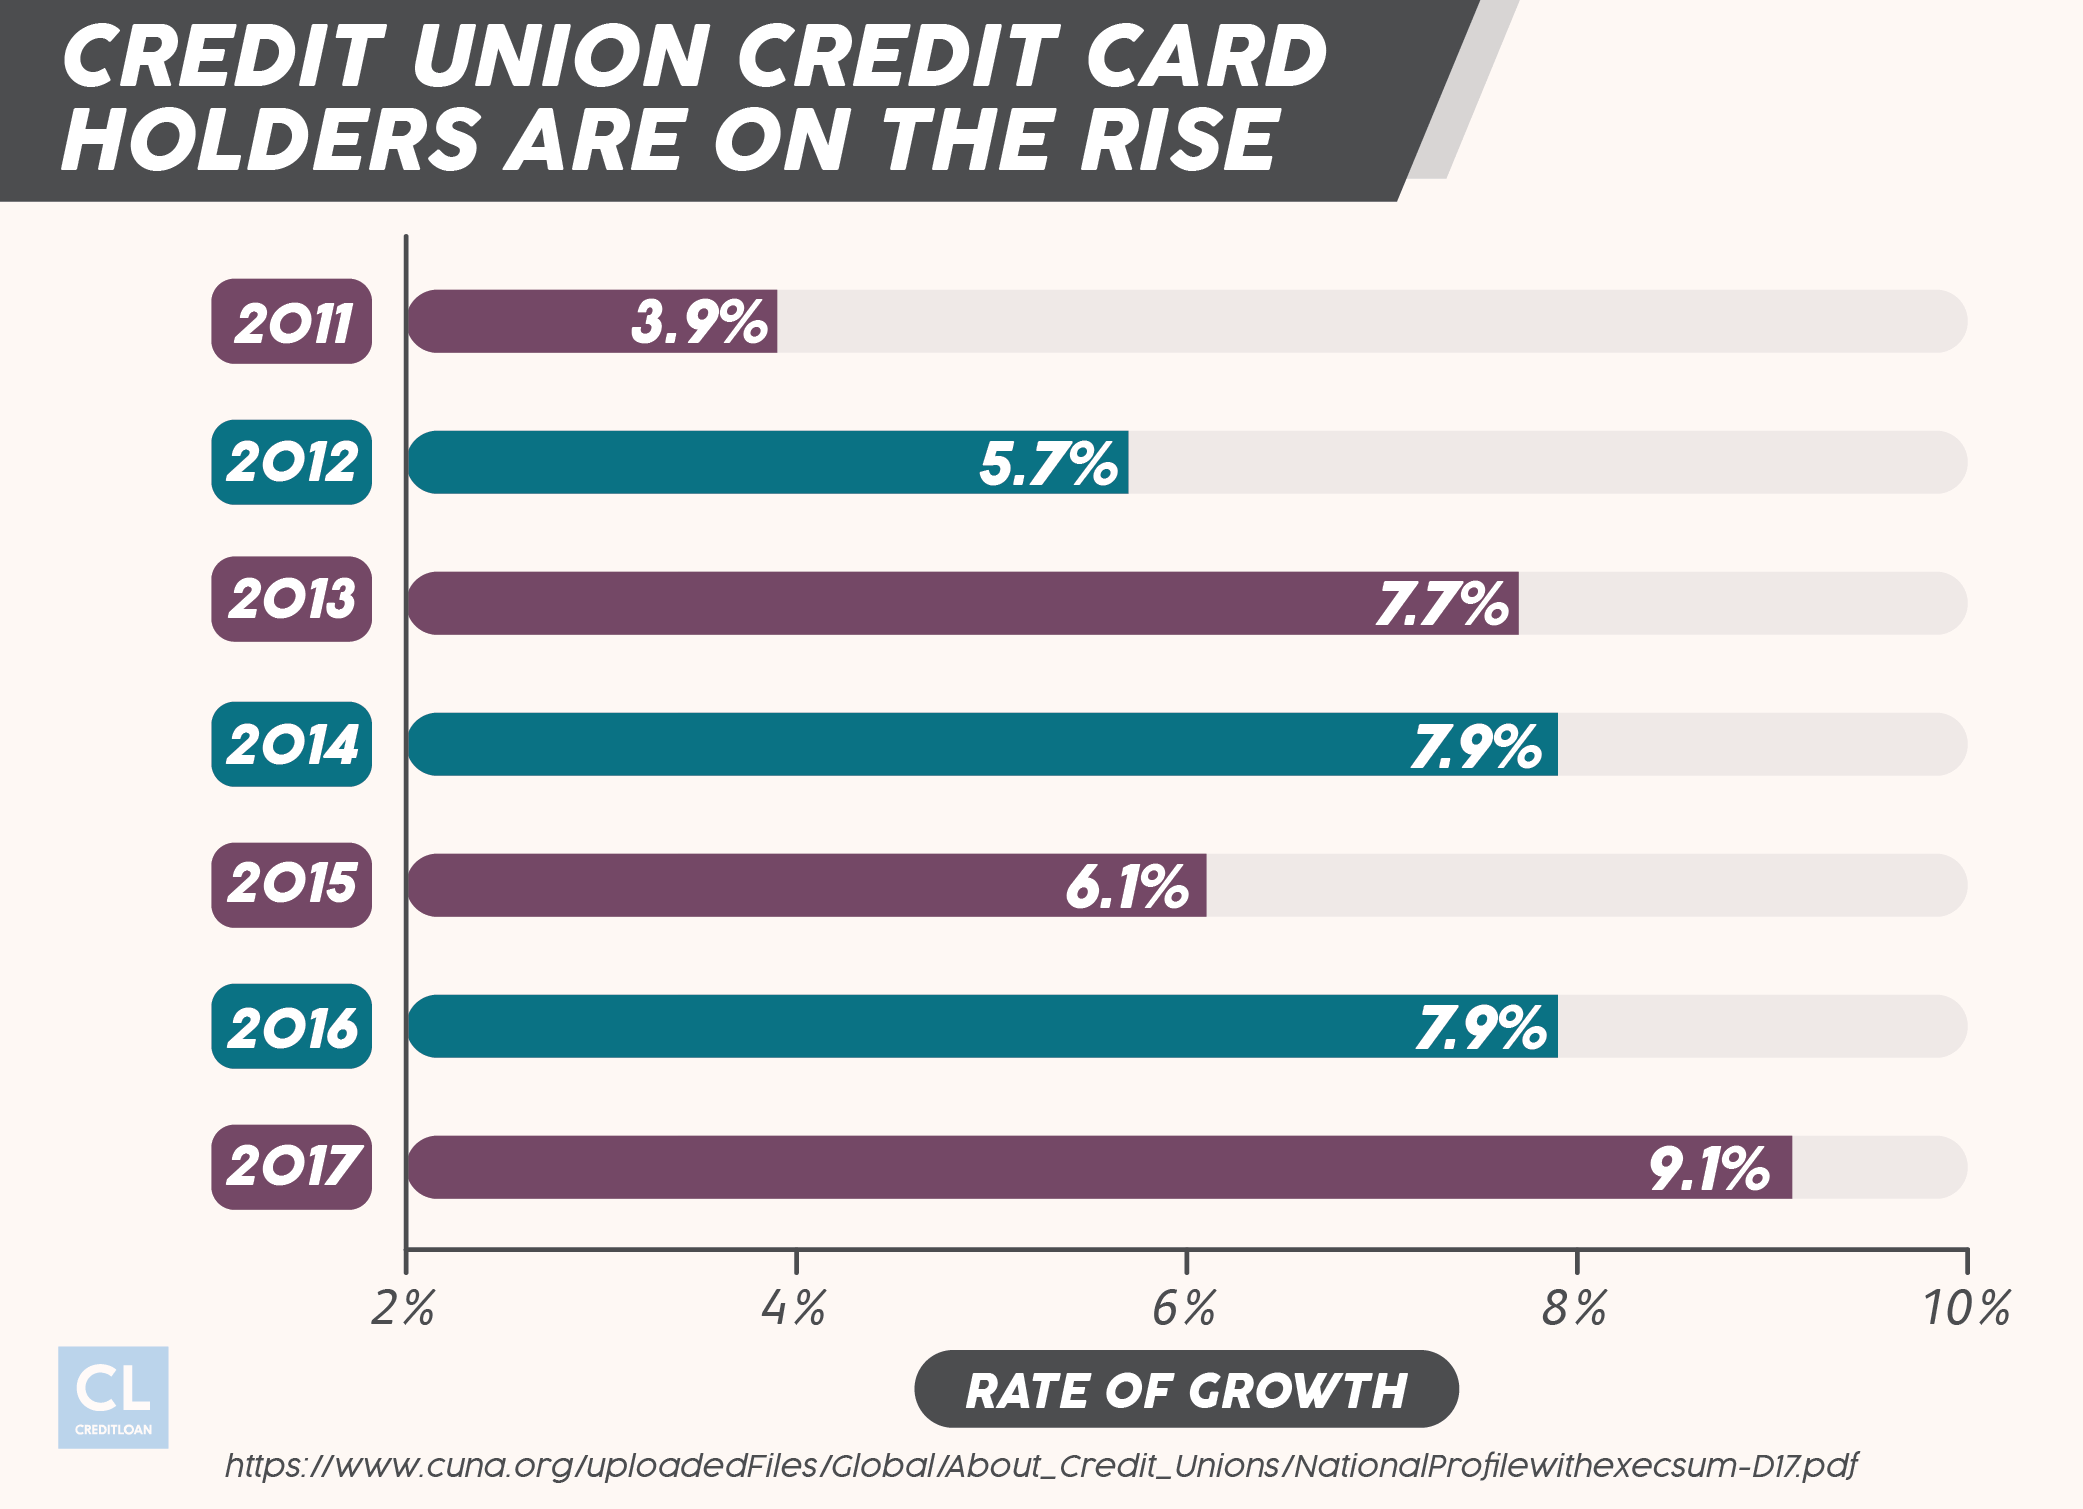 Rate of Growth of Credit Union Credit Card Users